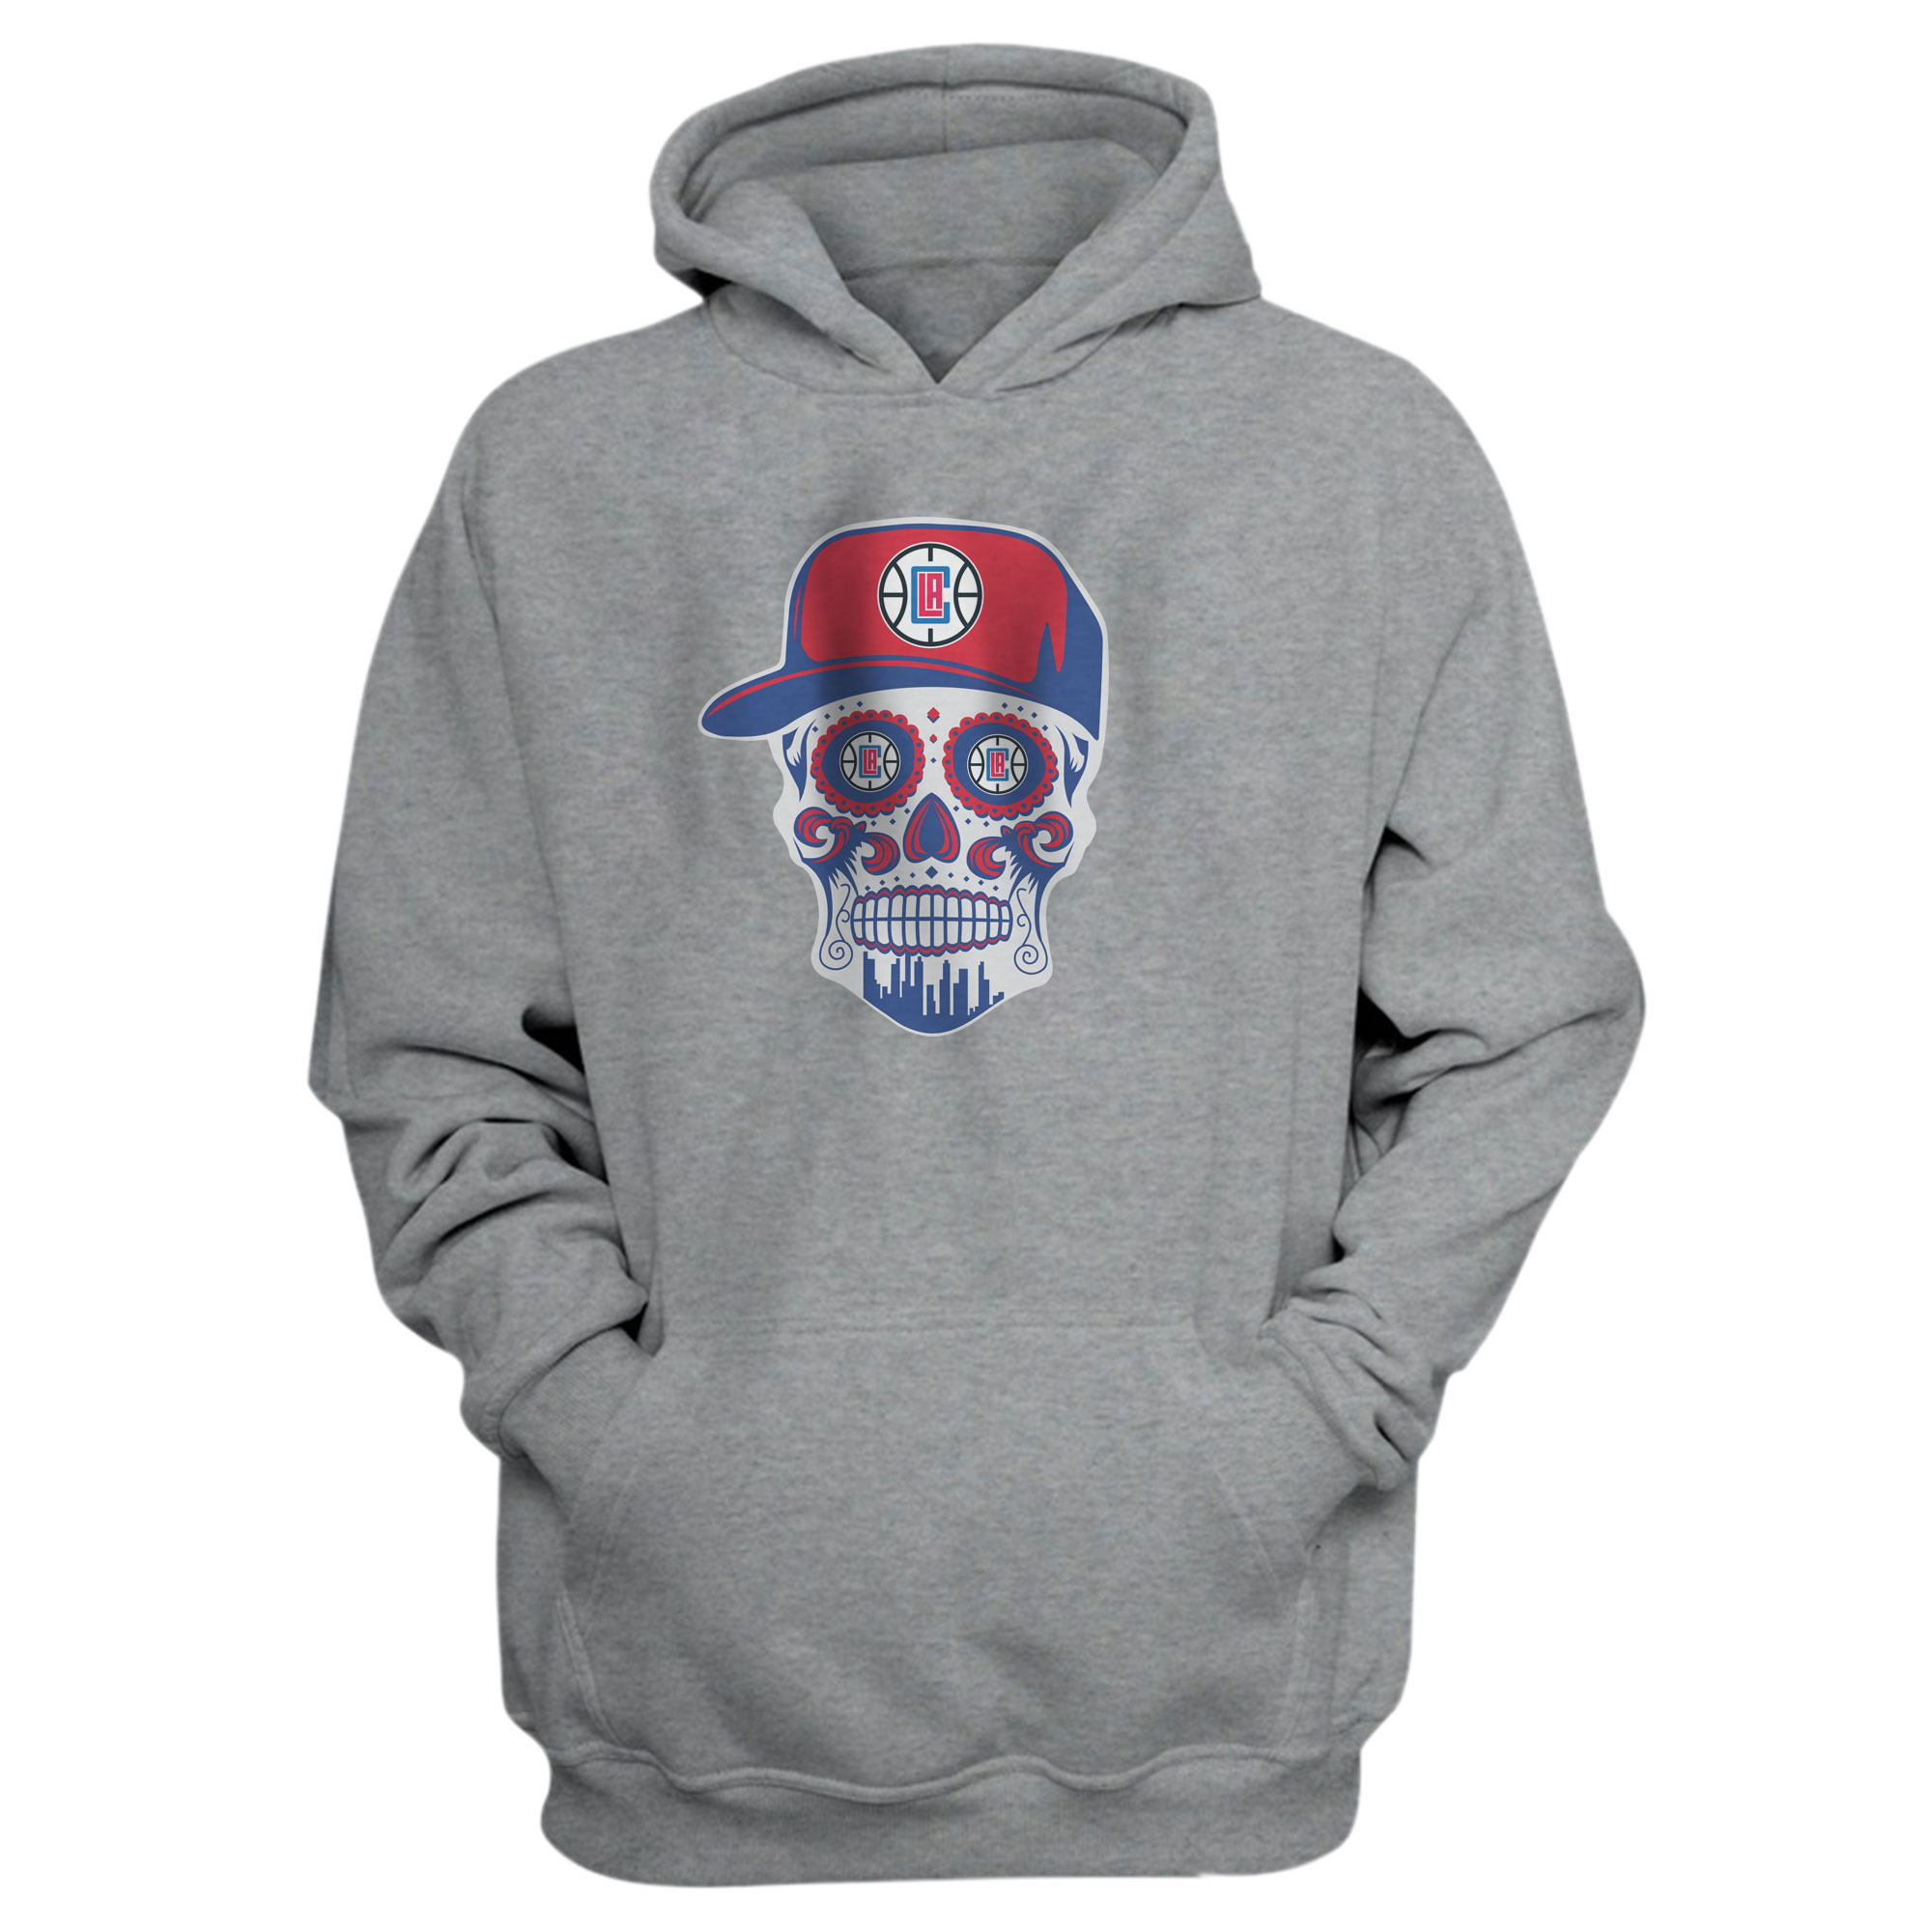 Clippers Skull Hoodie (HD-GRY-NP-450-CLIPPERS-SKULL)